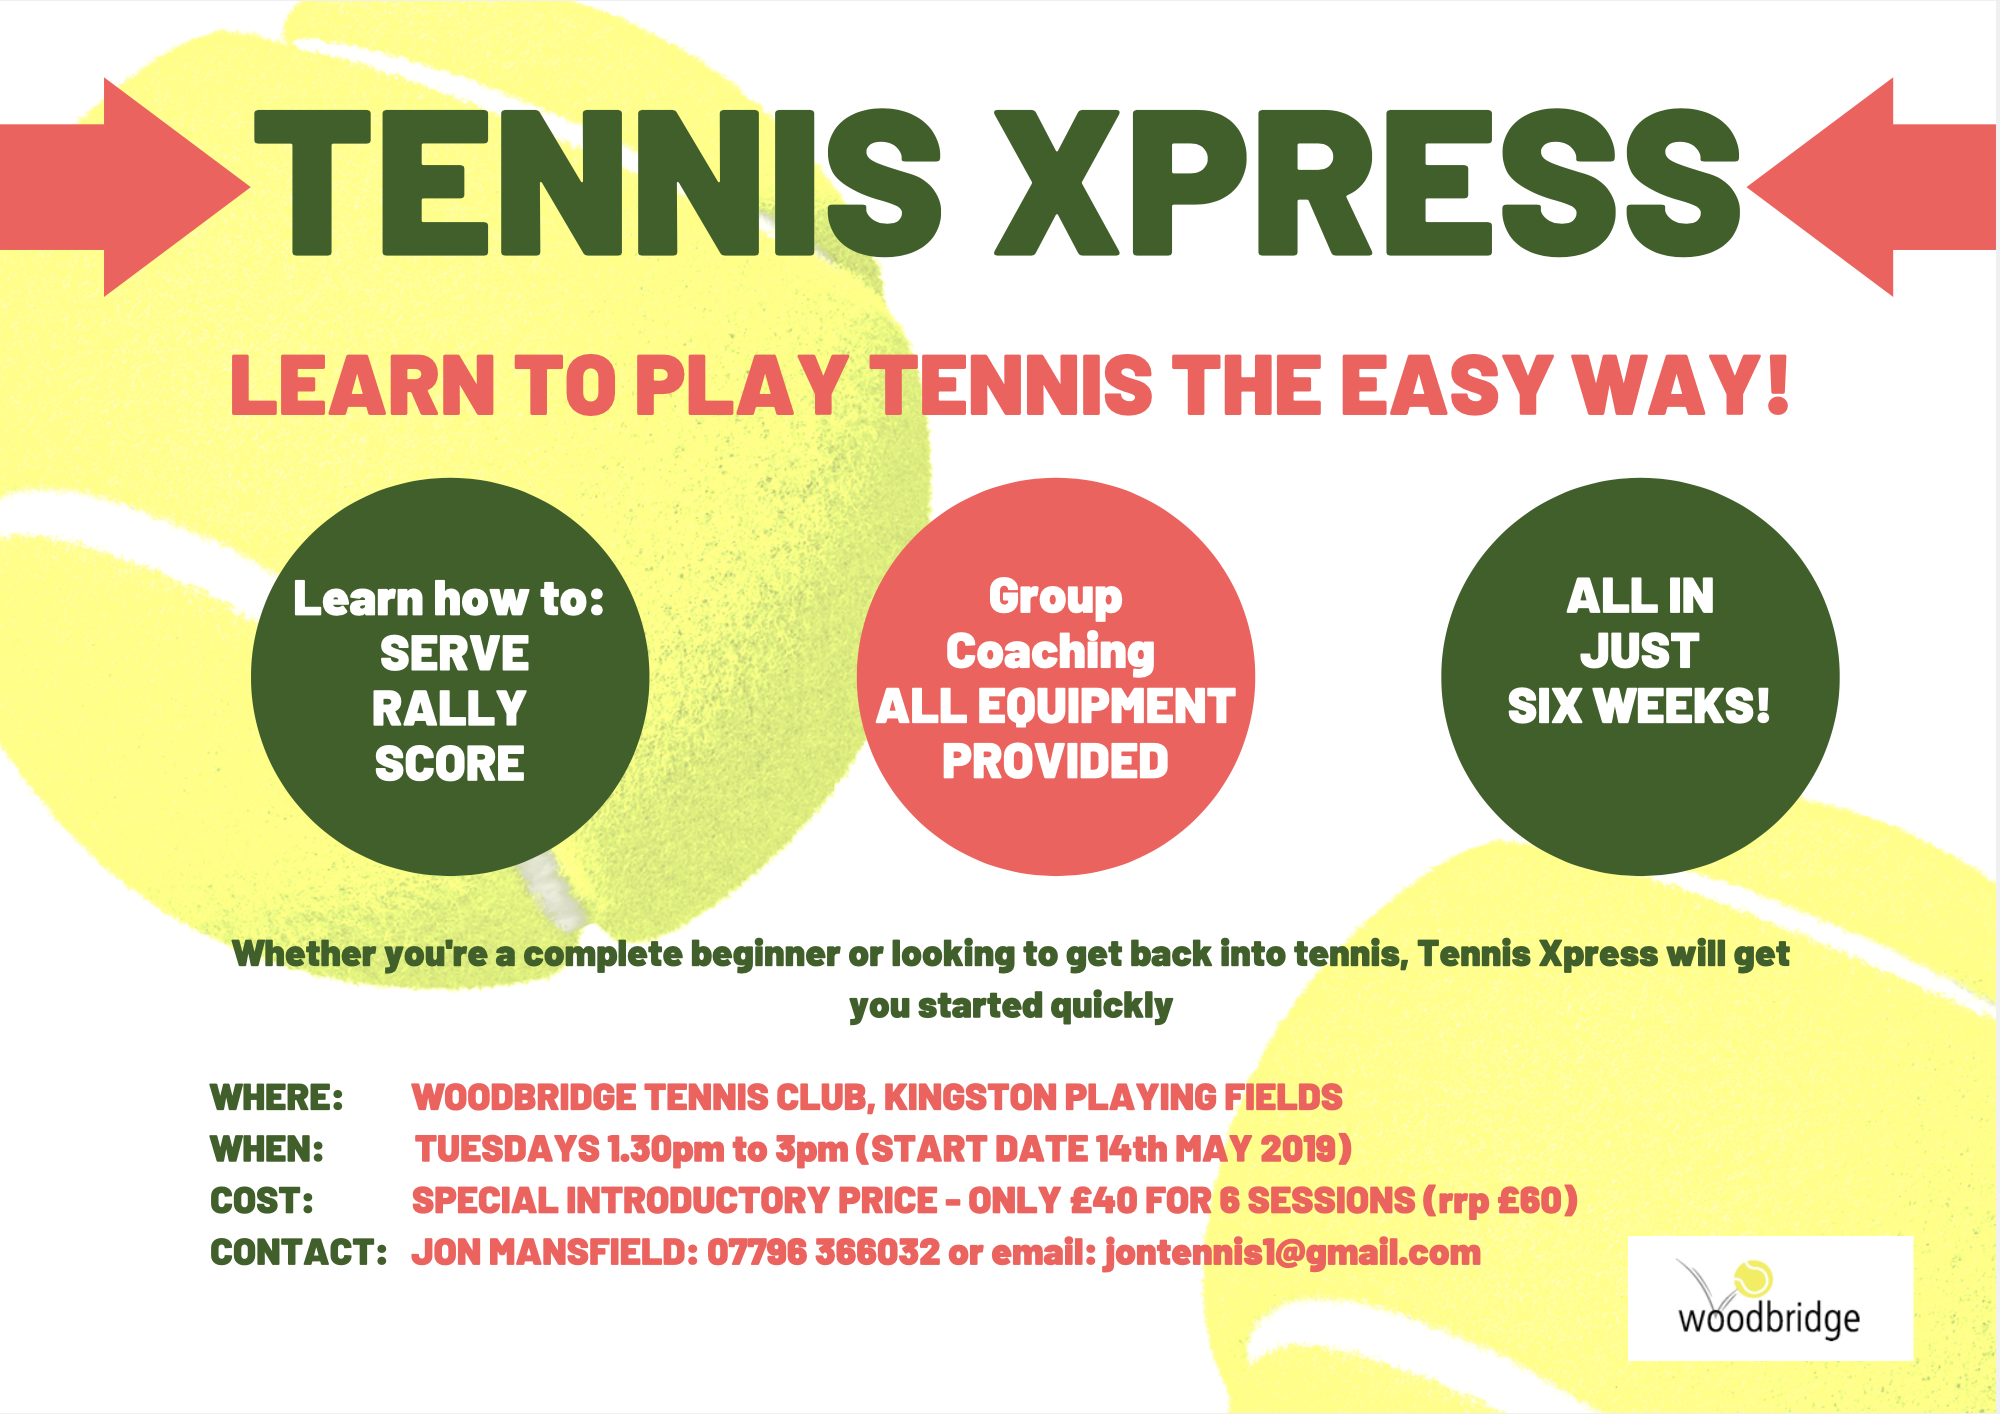 Tennis Xpress at Woodbridge Tennis Club in Suffolk